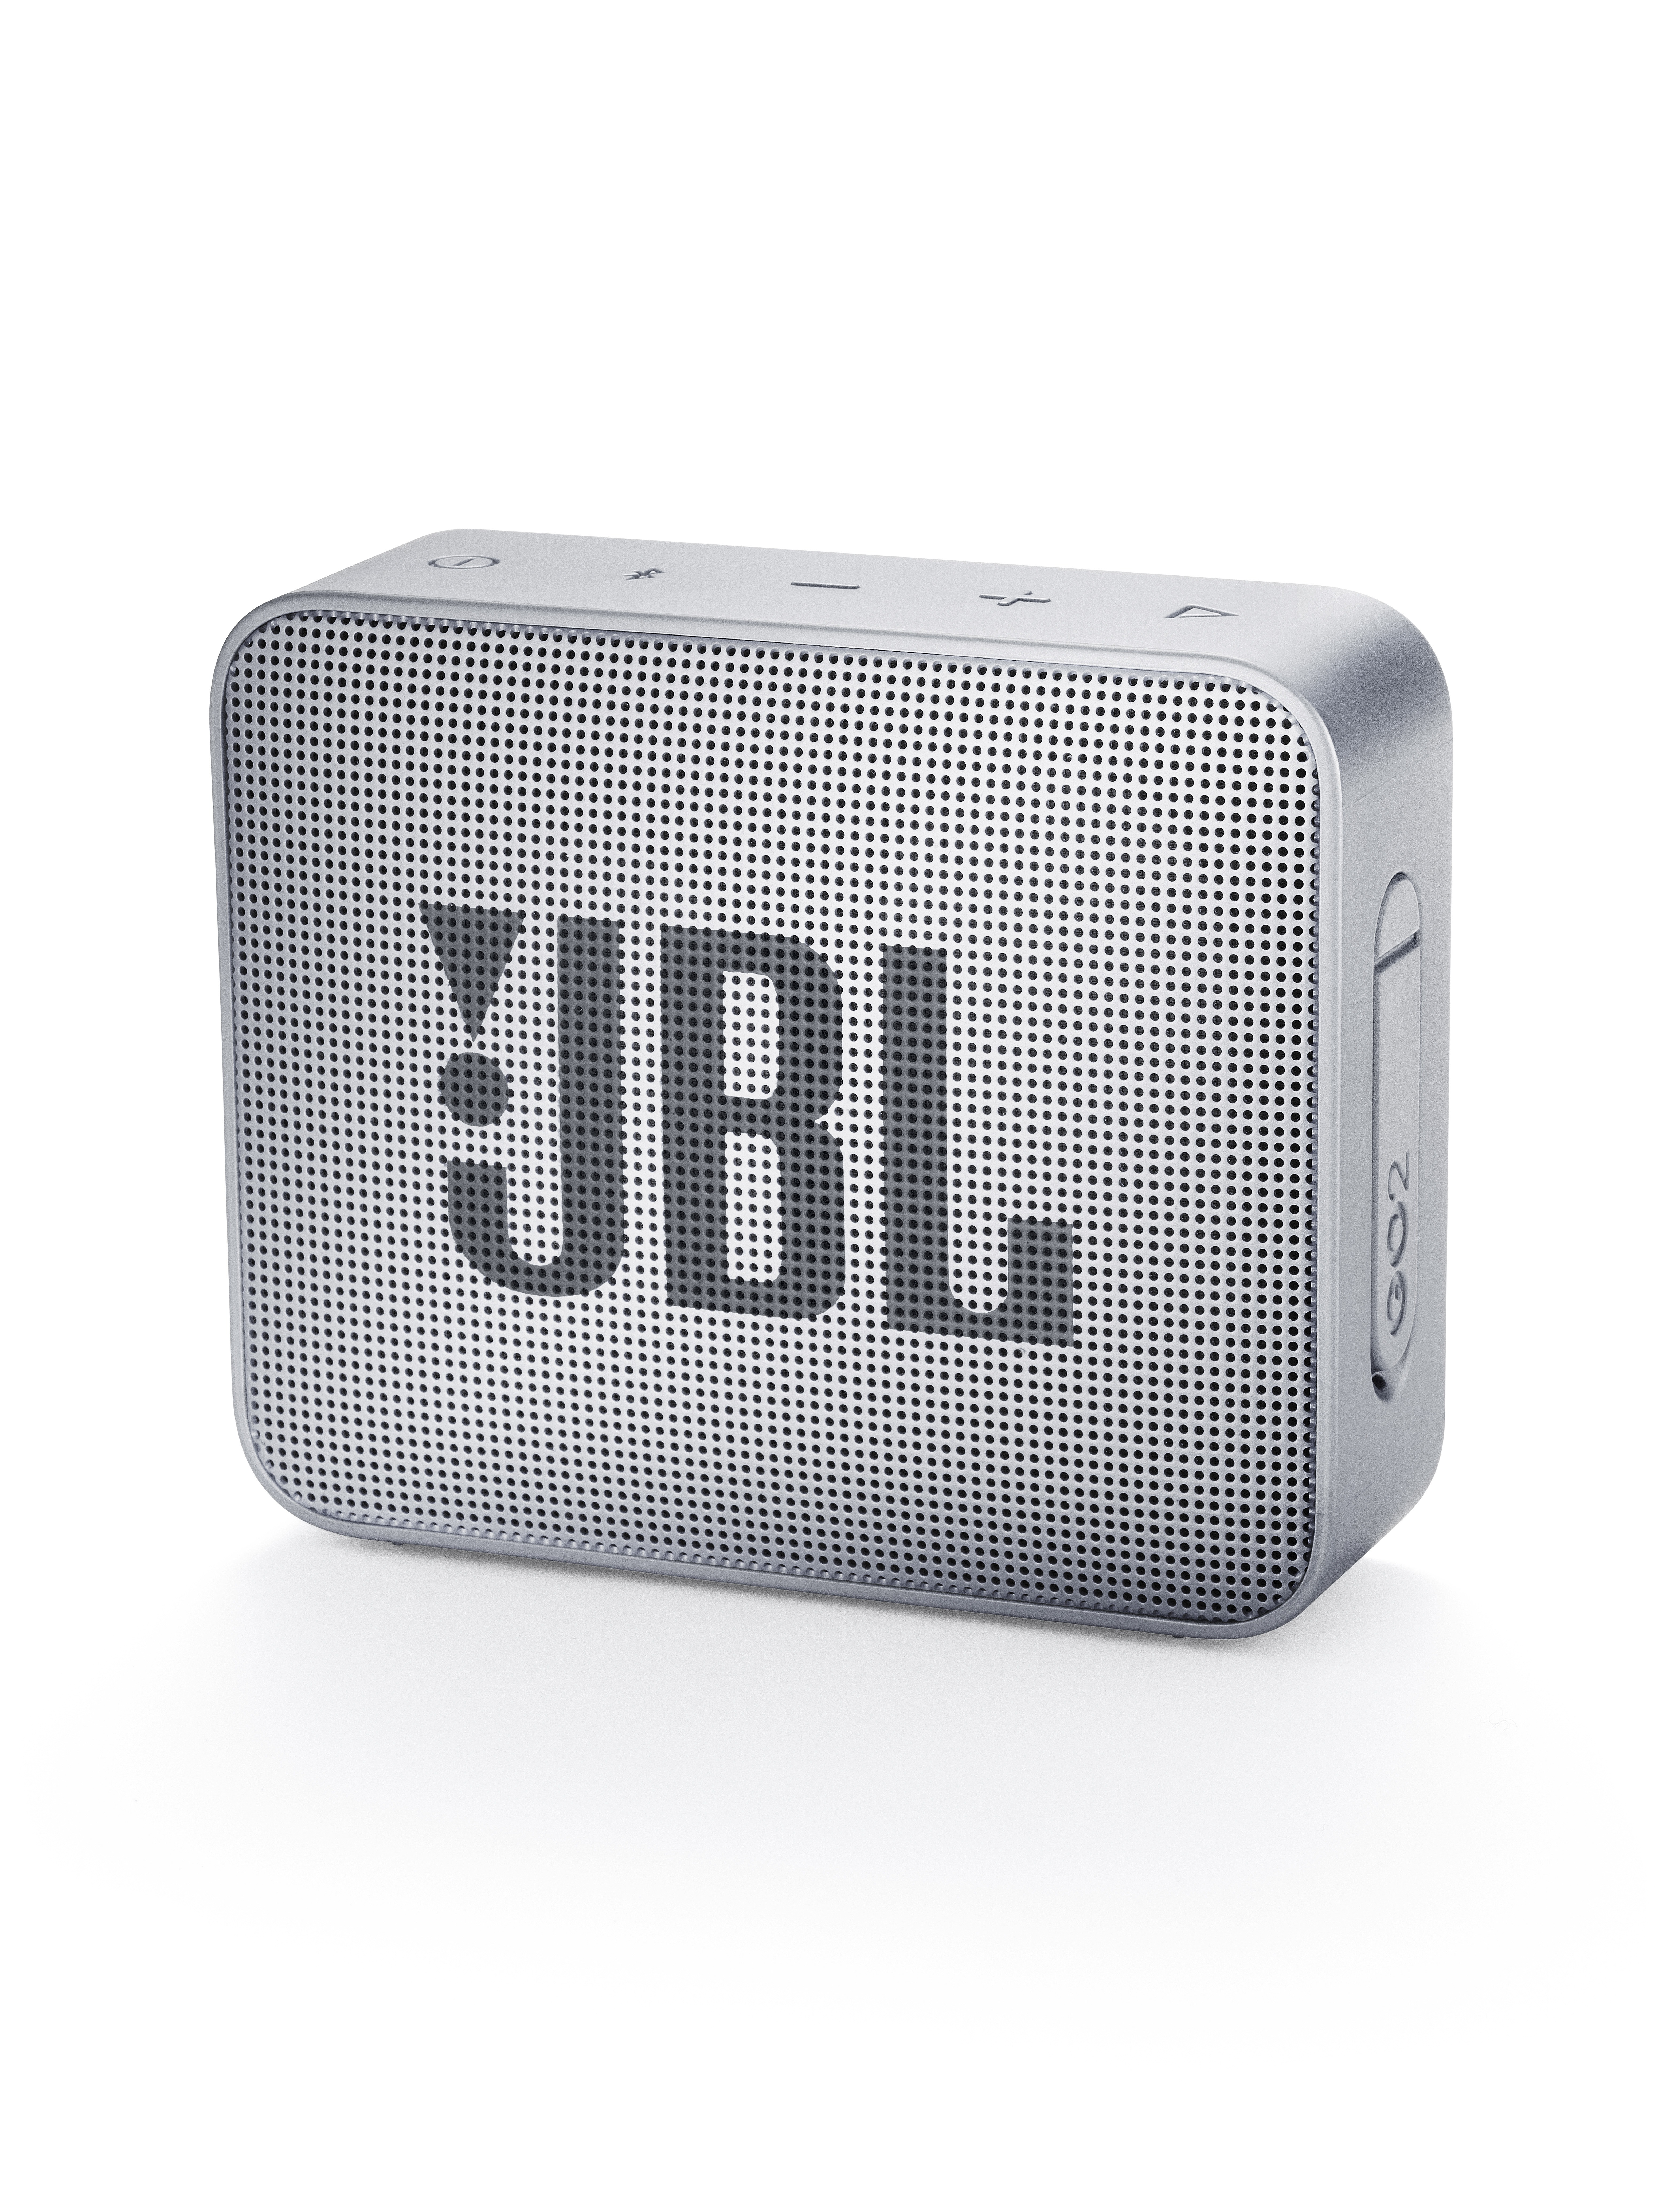 Korting JBL GO 2 bluetooth speaker